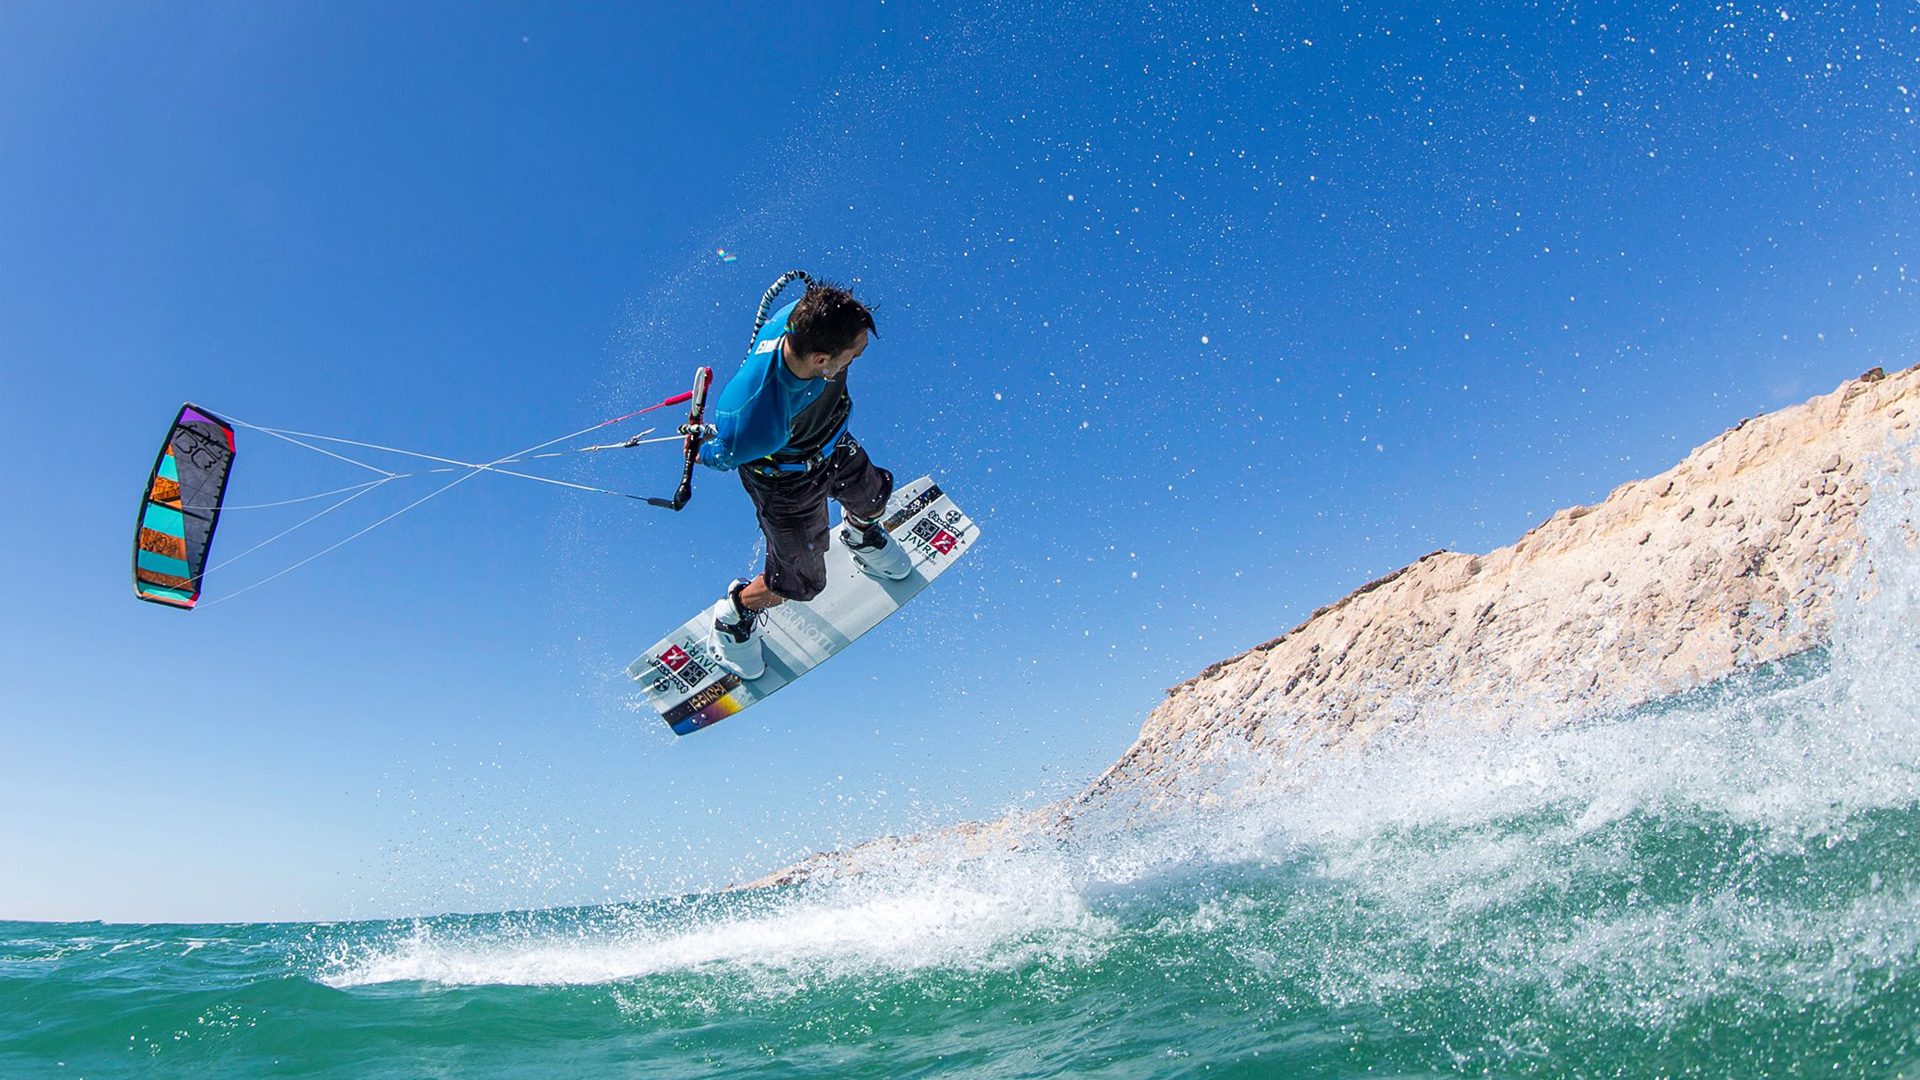 kitesurf wallpaper image - Youri Zoon with a very low handlepass - in resolution: High Definition - HD 16:9 1920 X 1080